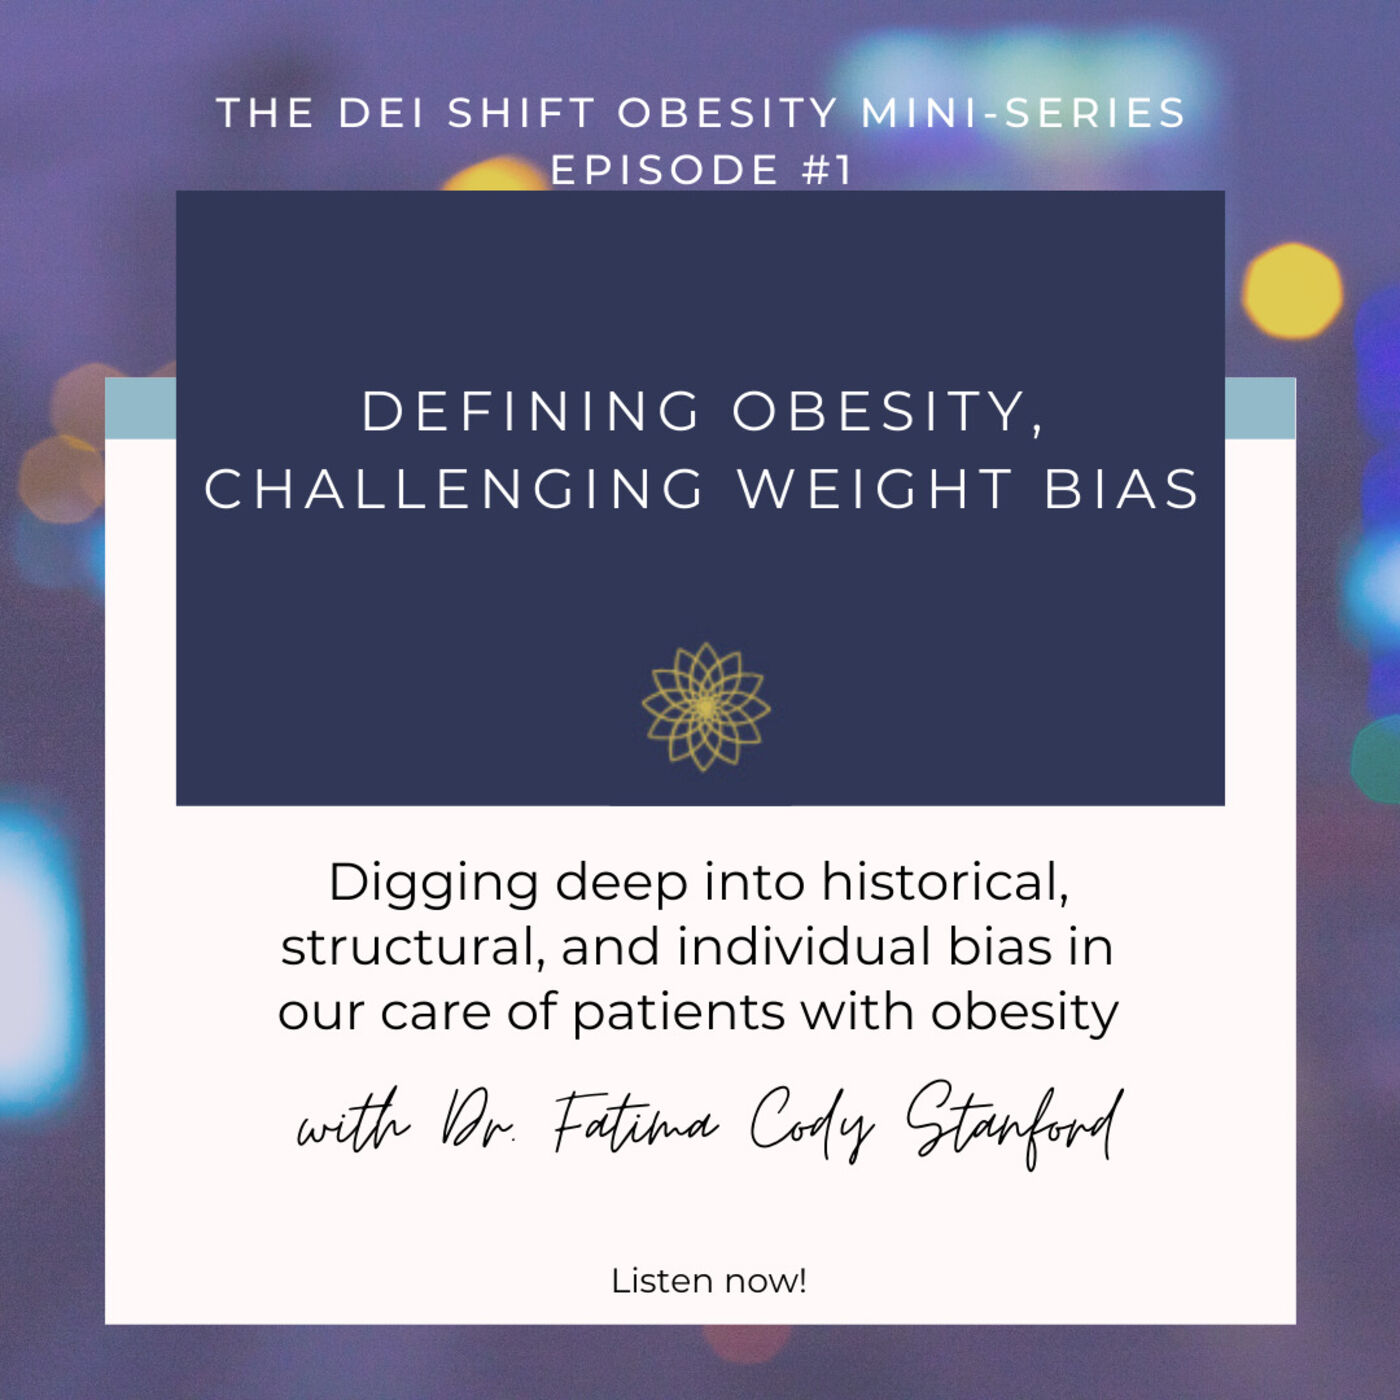 Obesity Mini-Series Ep 1: Defining Obesity, Challenging Weight Bias